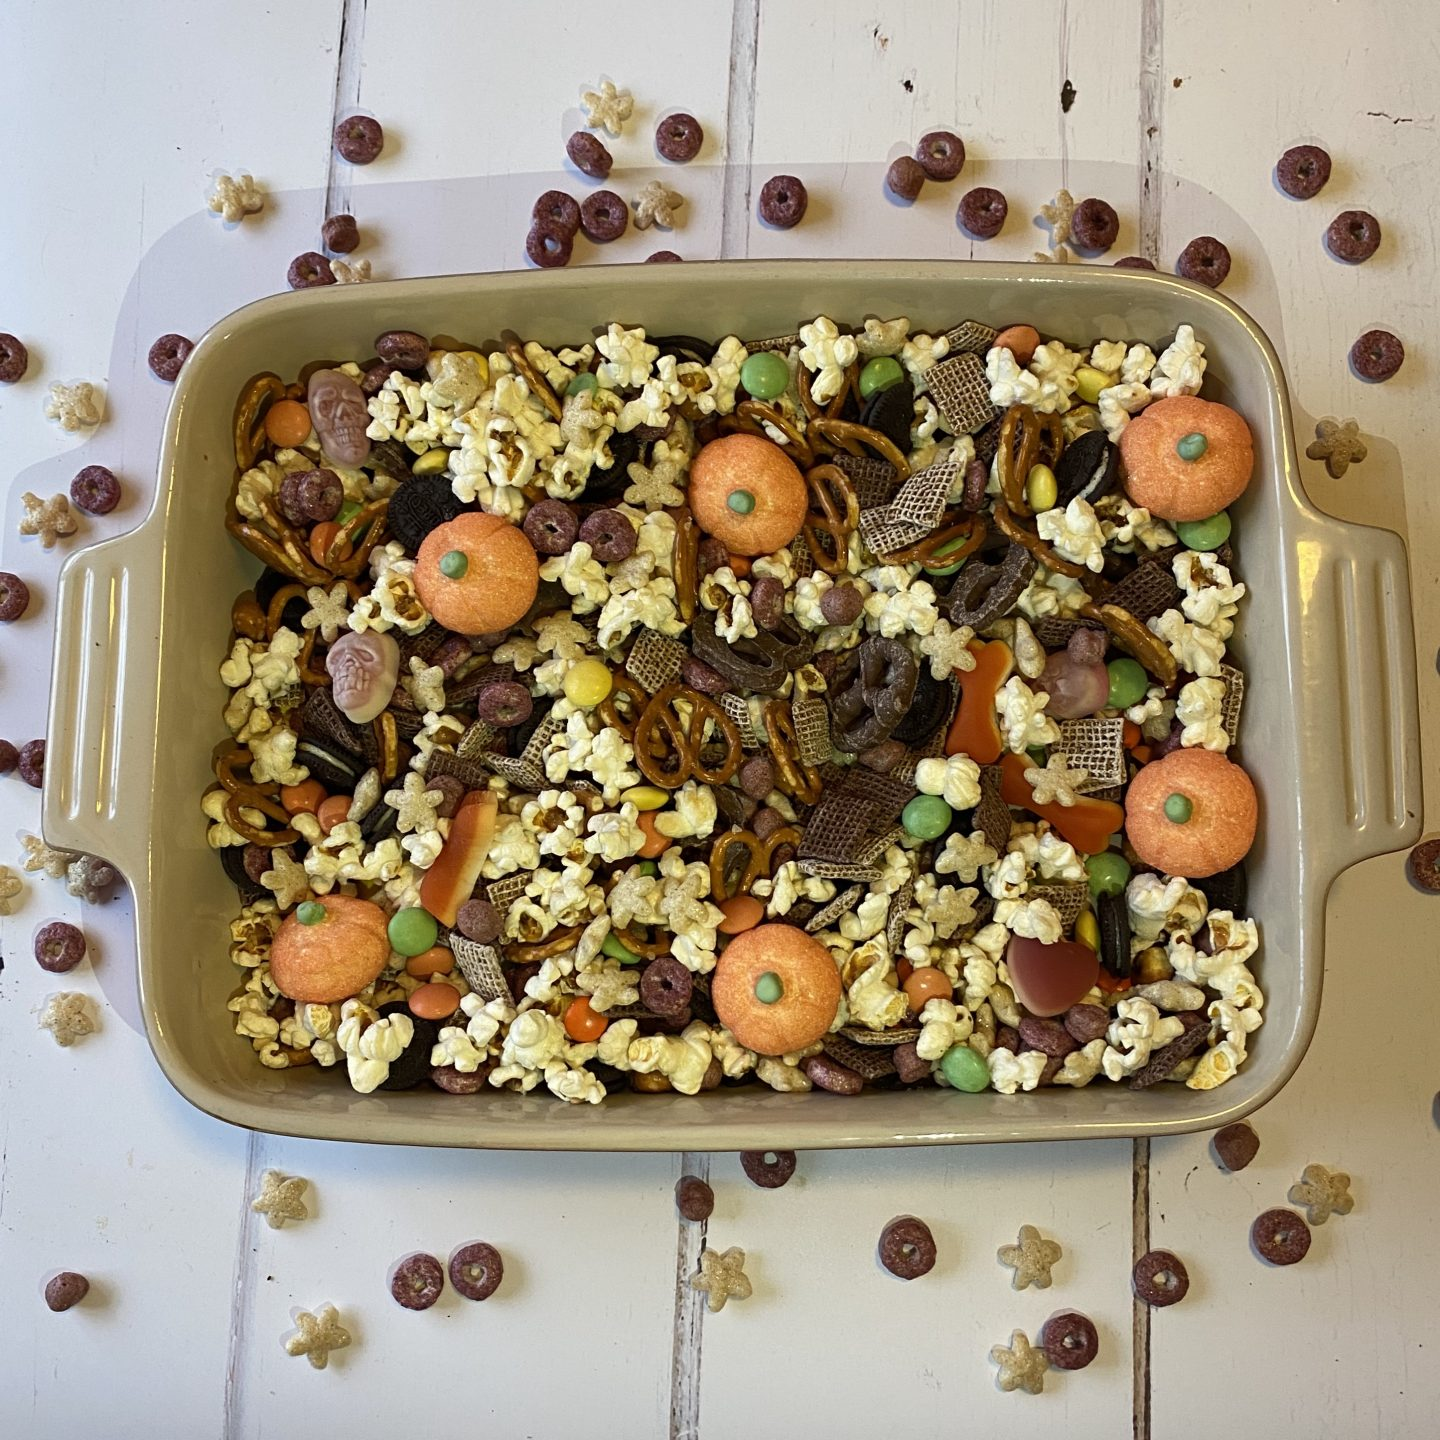 a serving dish filled with Halloween sweets and popcorn